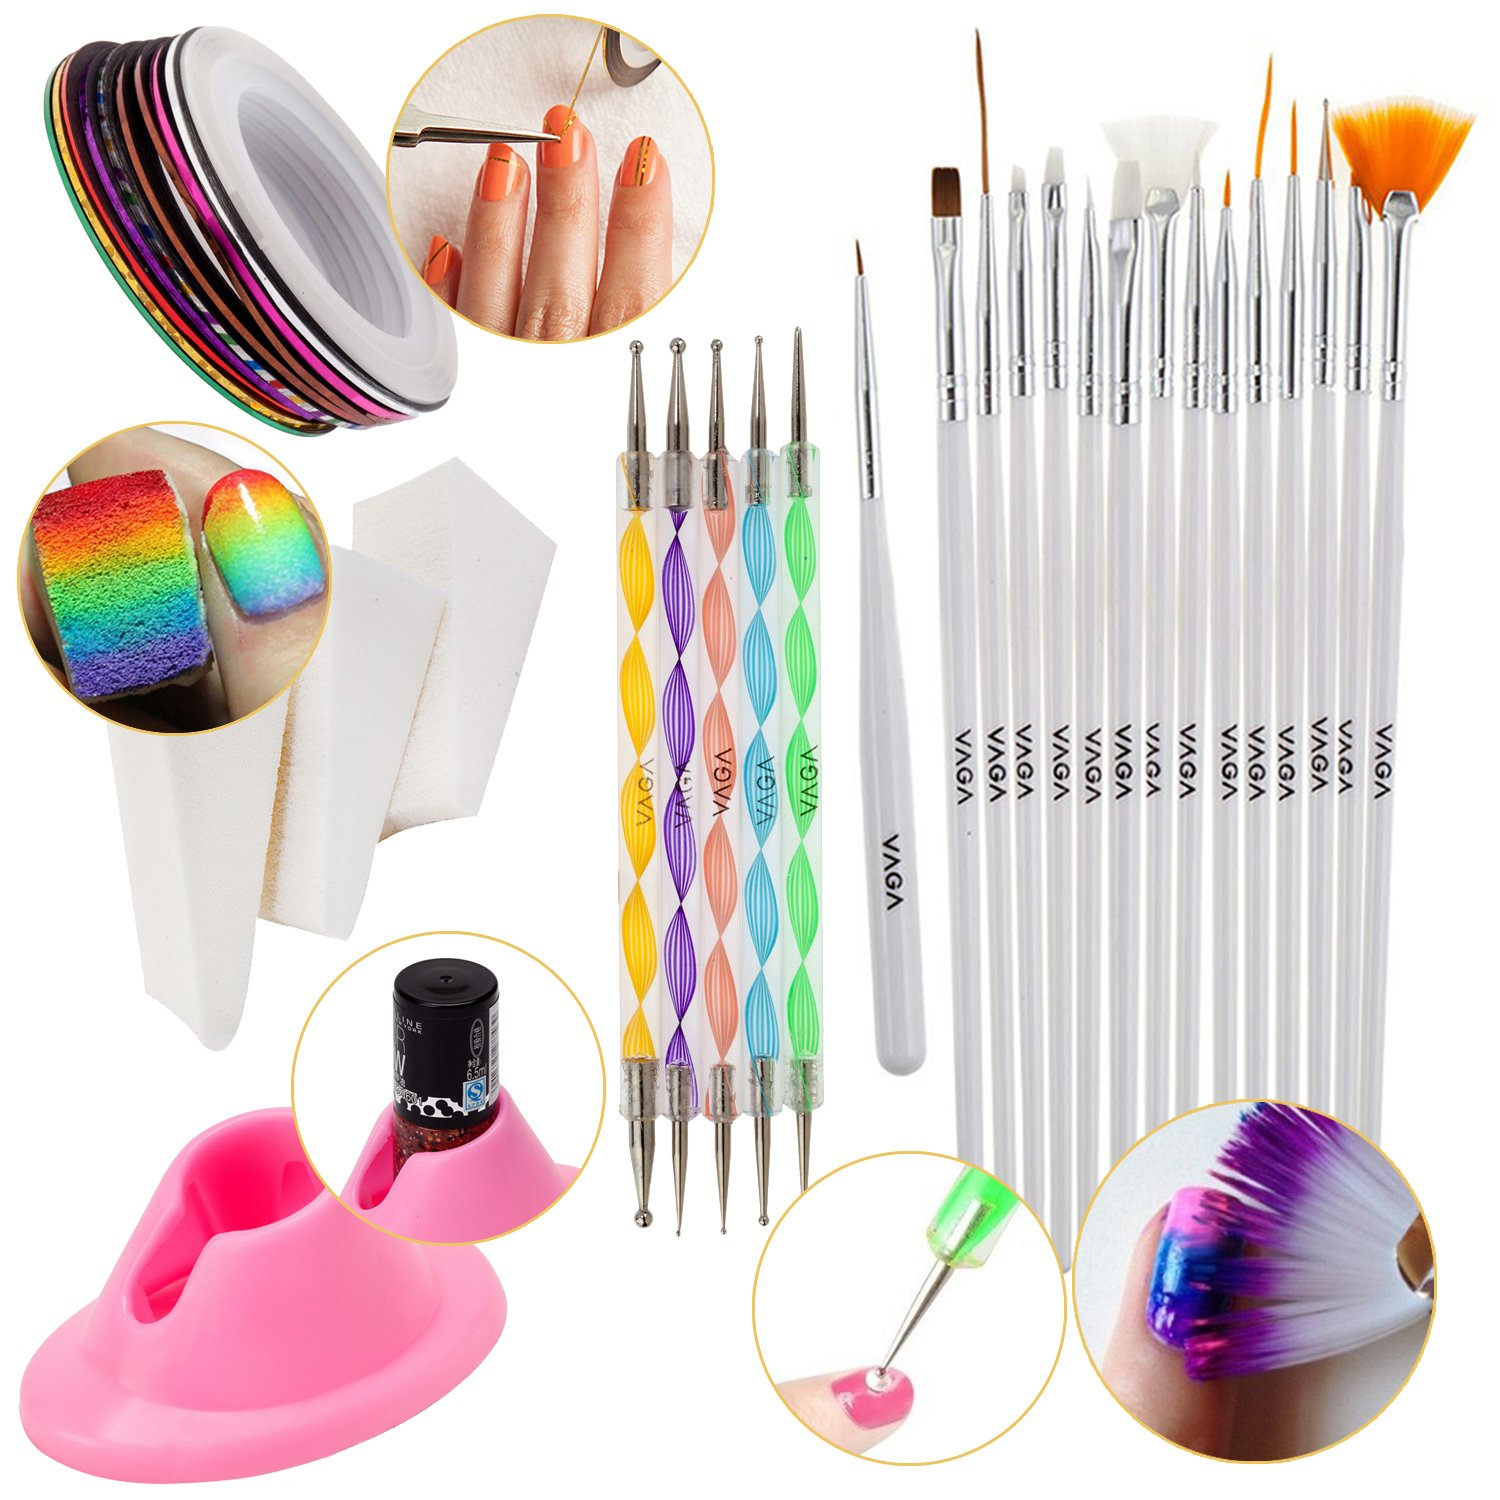 Nail Art Set With 3pcs Manicure Gradient Designs Stamping Wedges, Silicone Anti Spill Slip Polish Bottles Holder, 5 Dotting Tools, 10 Rolls of Colourful Striping Tapes And 15 Nailart Brushes By VAGA